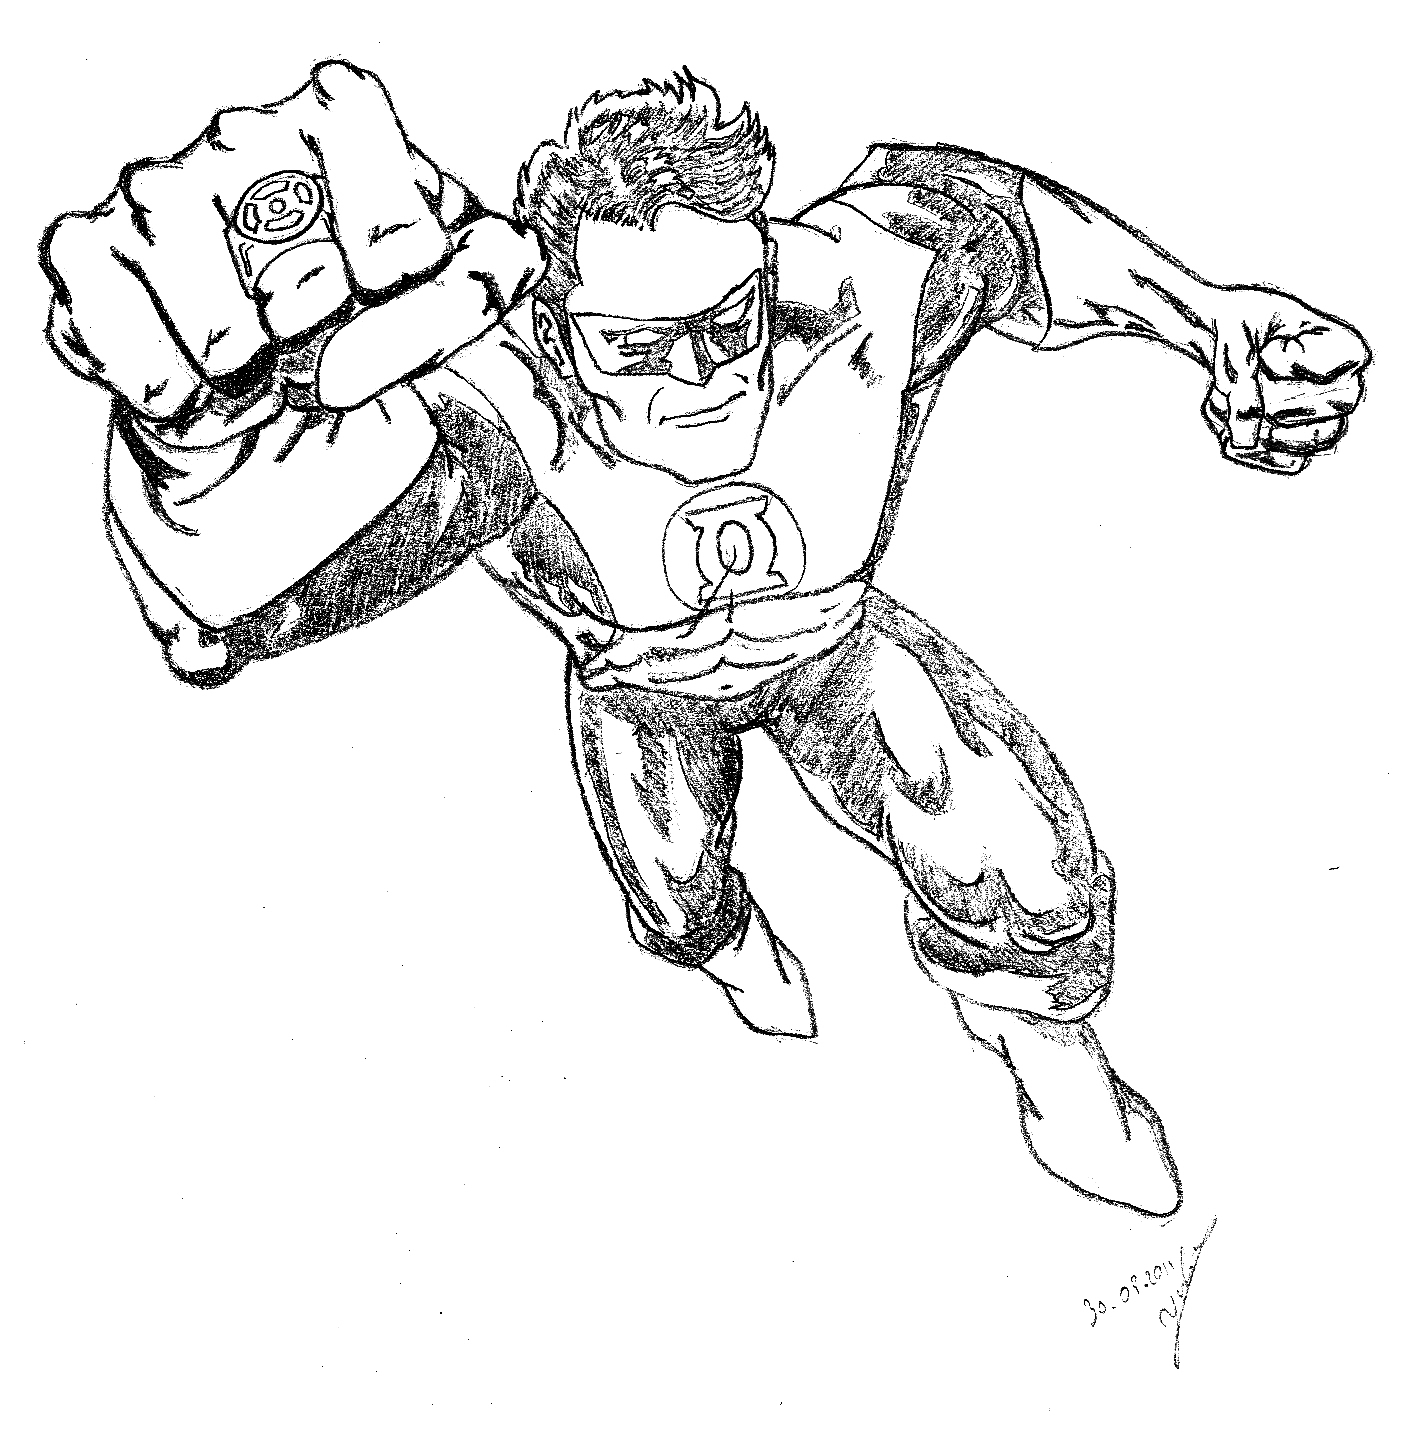 Green lantern inspiration juju gribouille - Coloriage dc comics ...